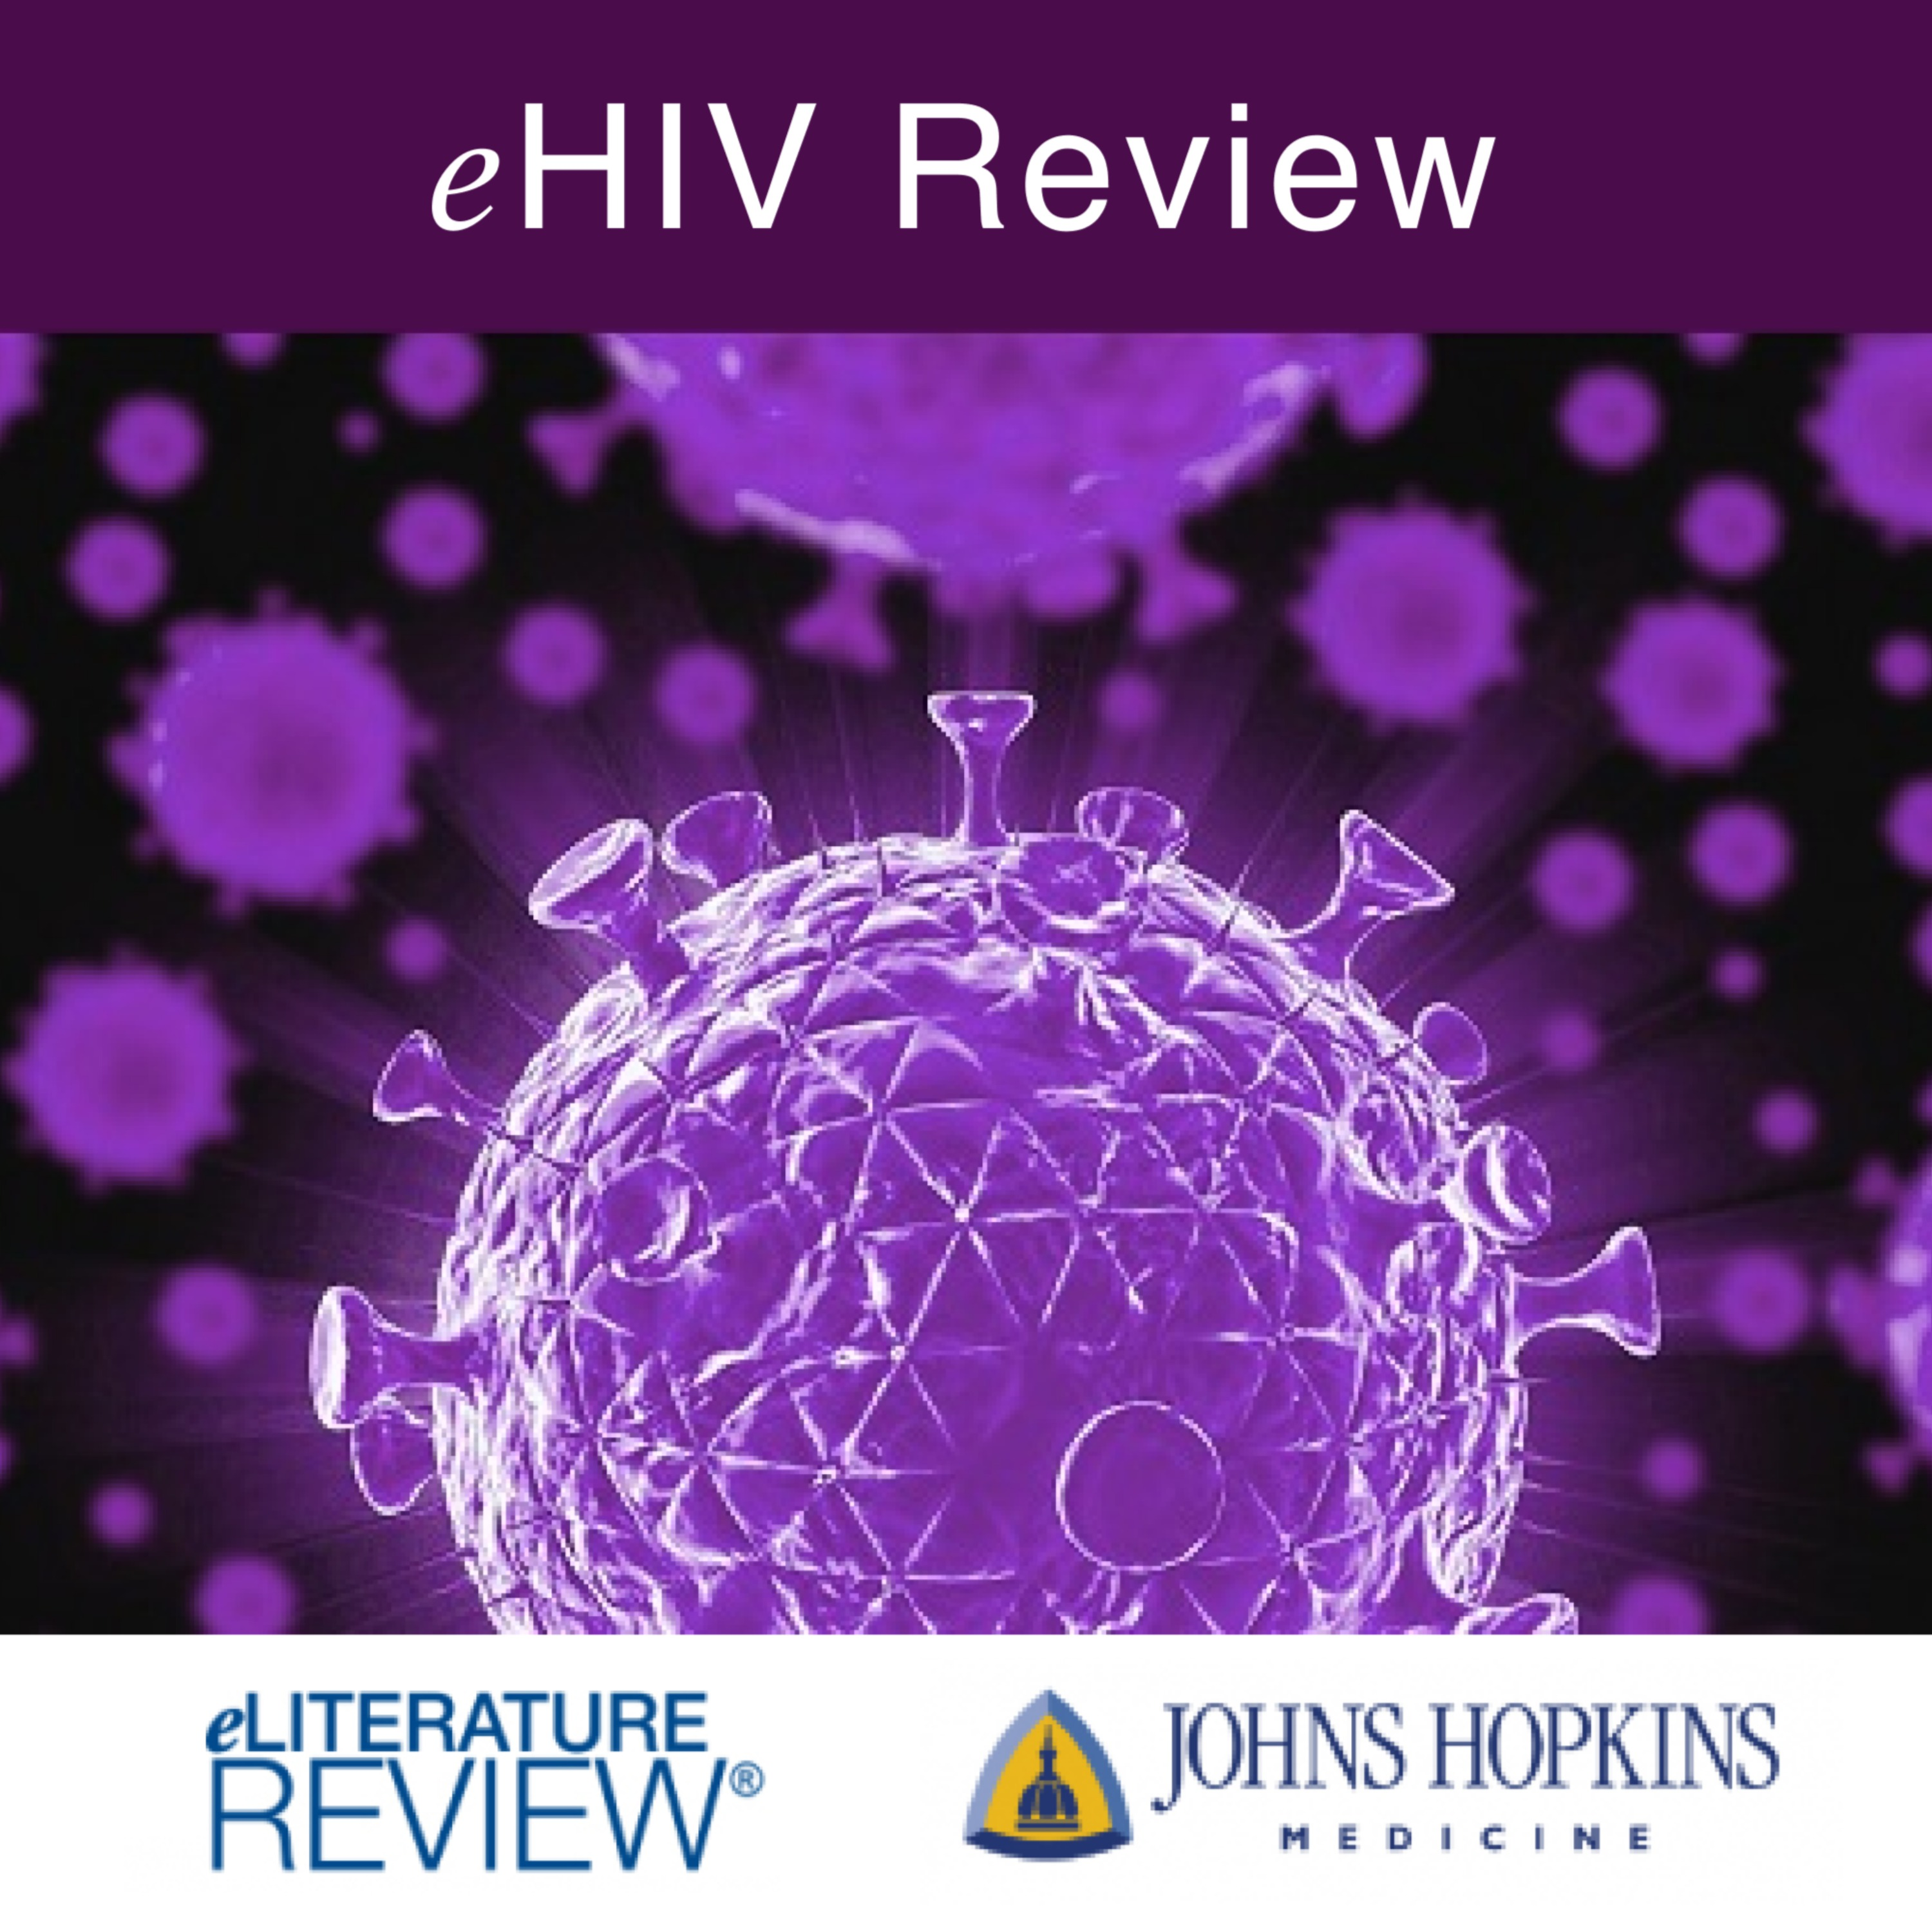 eHIV Review